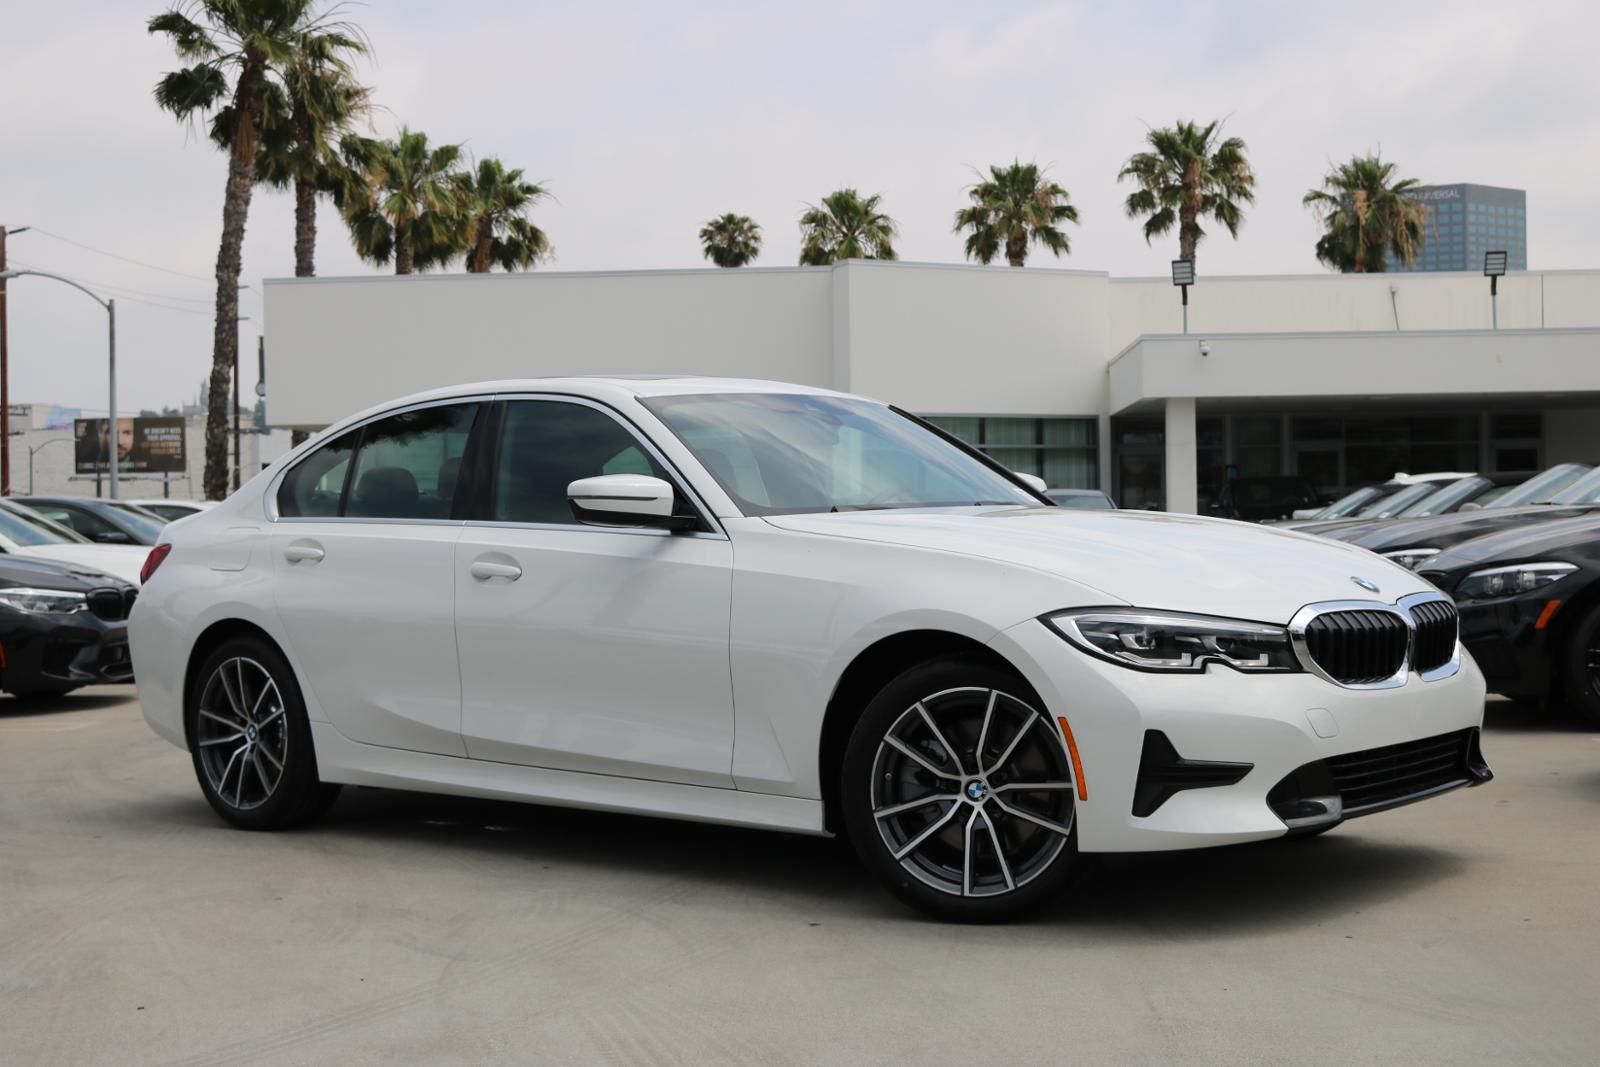 New 2019 Bmw 3 Series 330i 330i Sedan North America In North